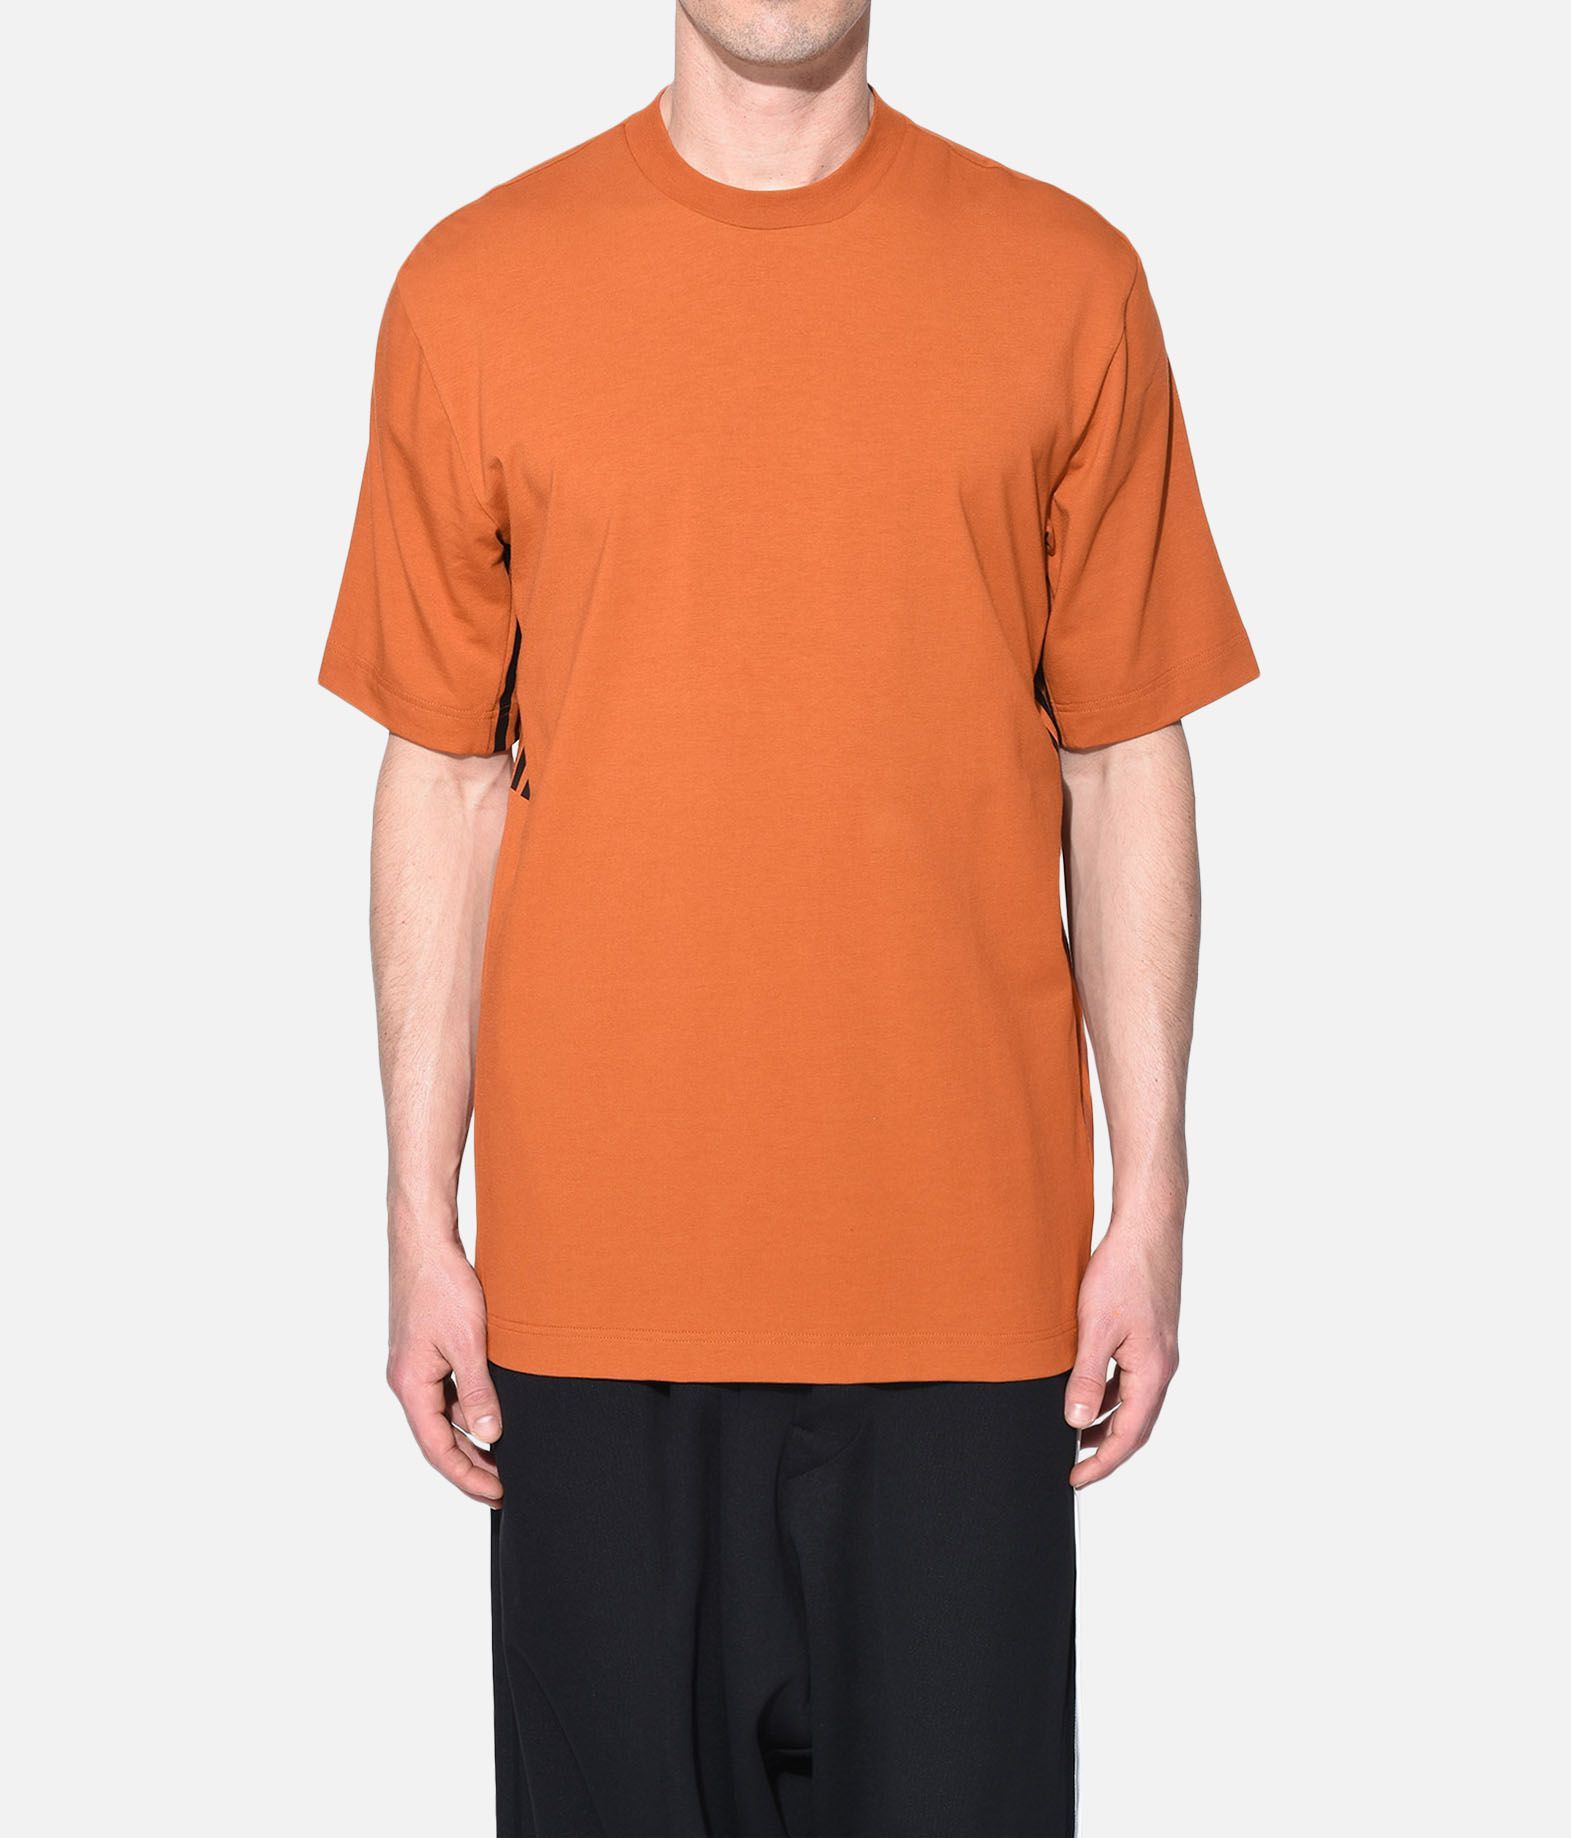 Y-3 Y-3 3-Stripes Tee Kurzärmliges T-shirt Herren r